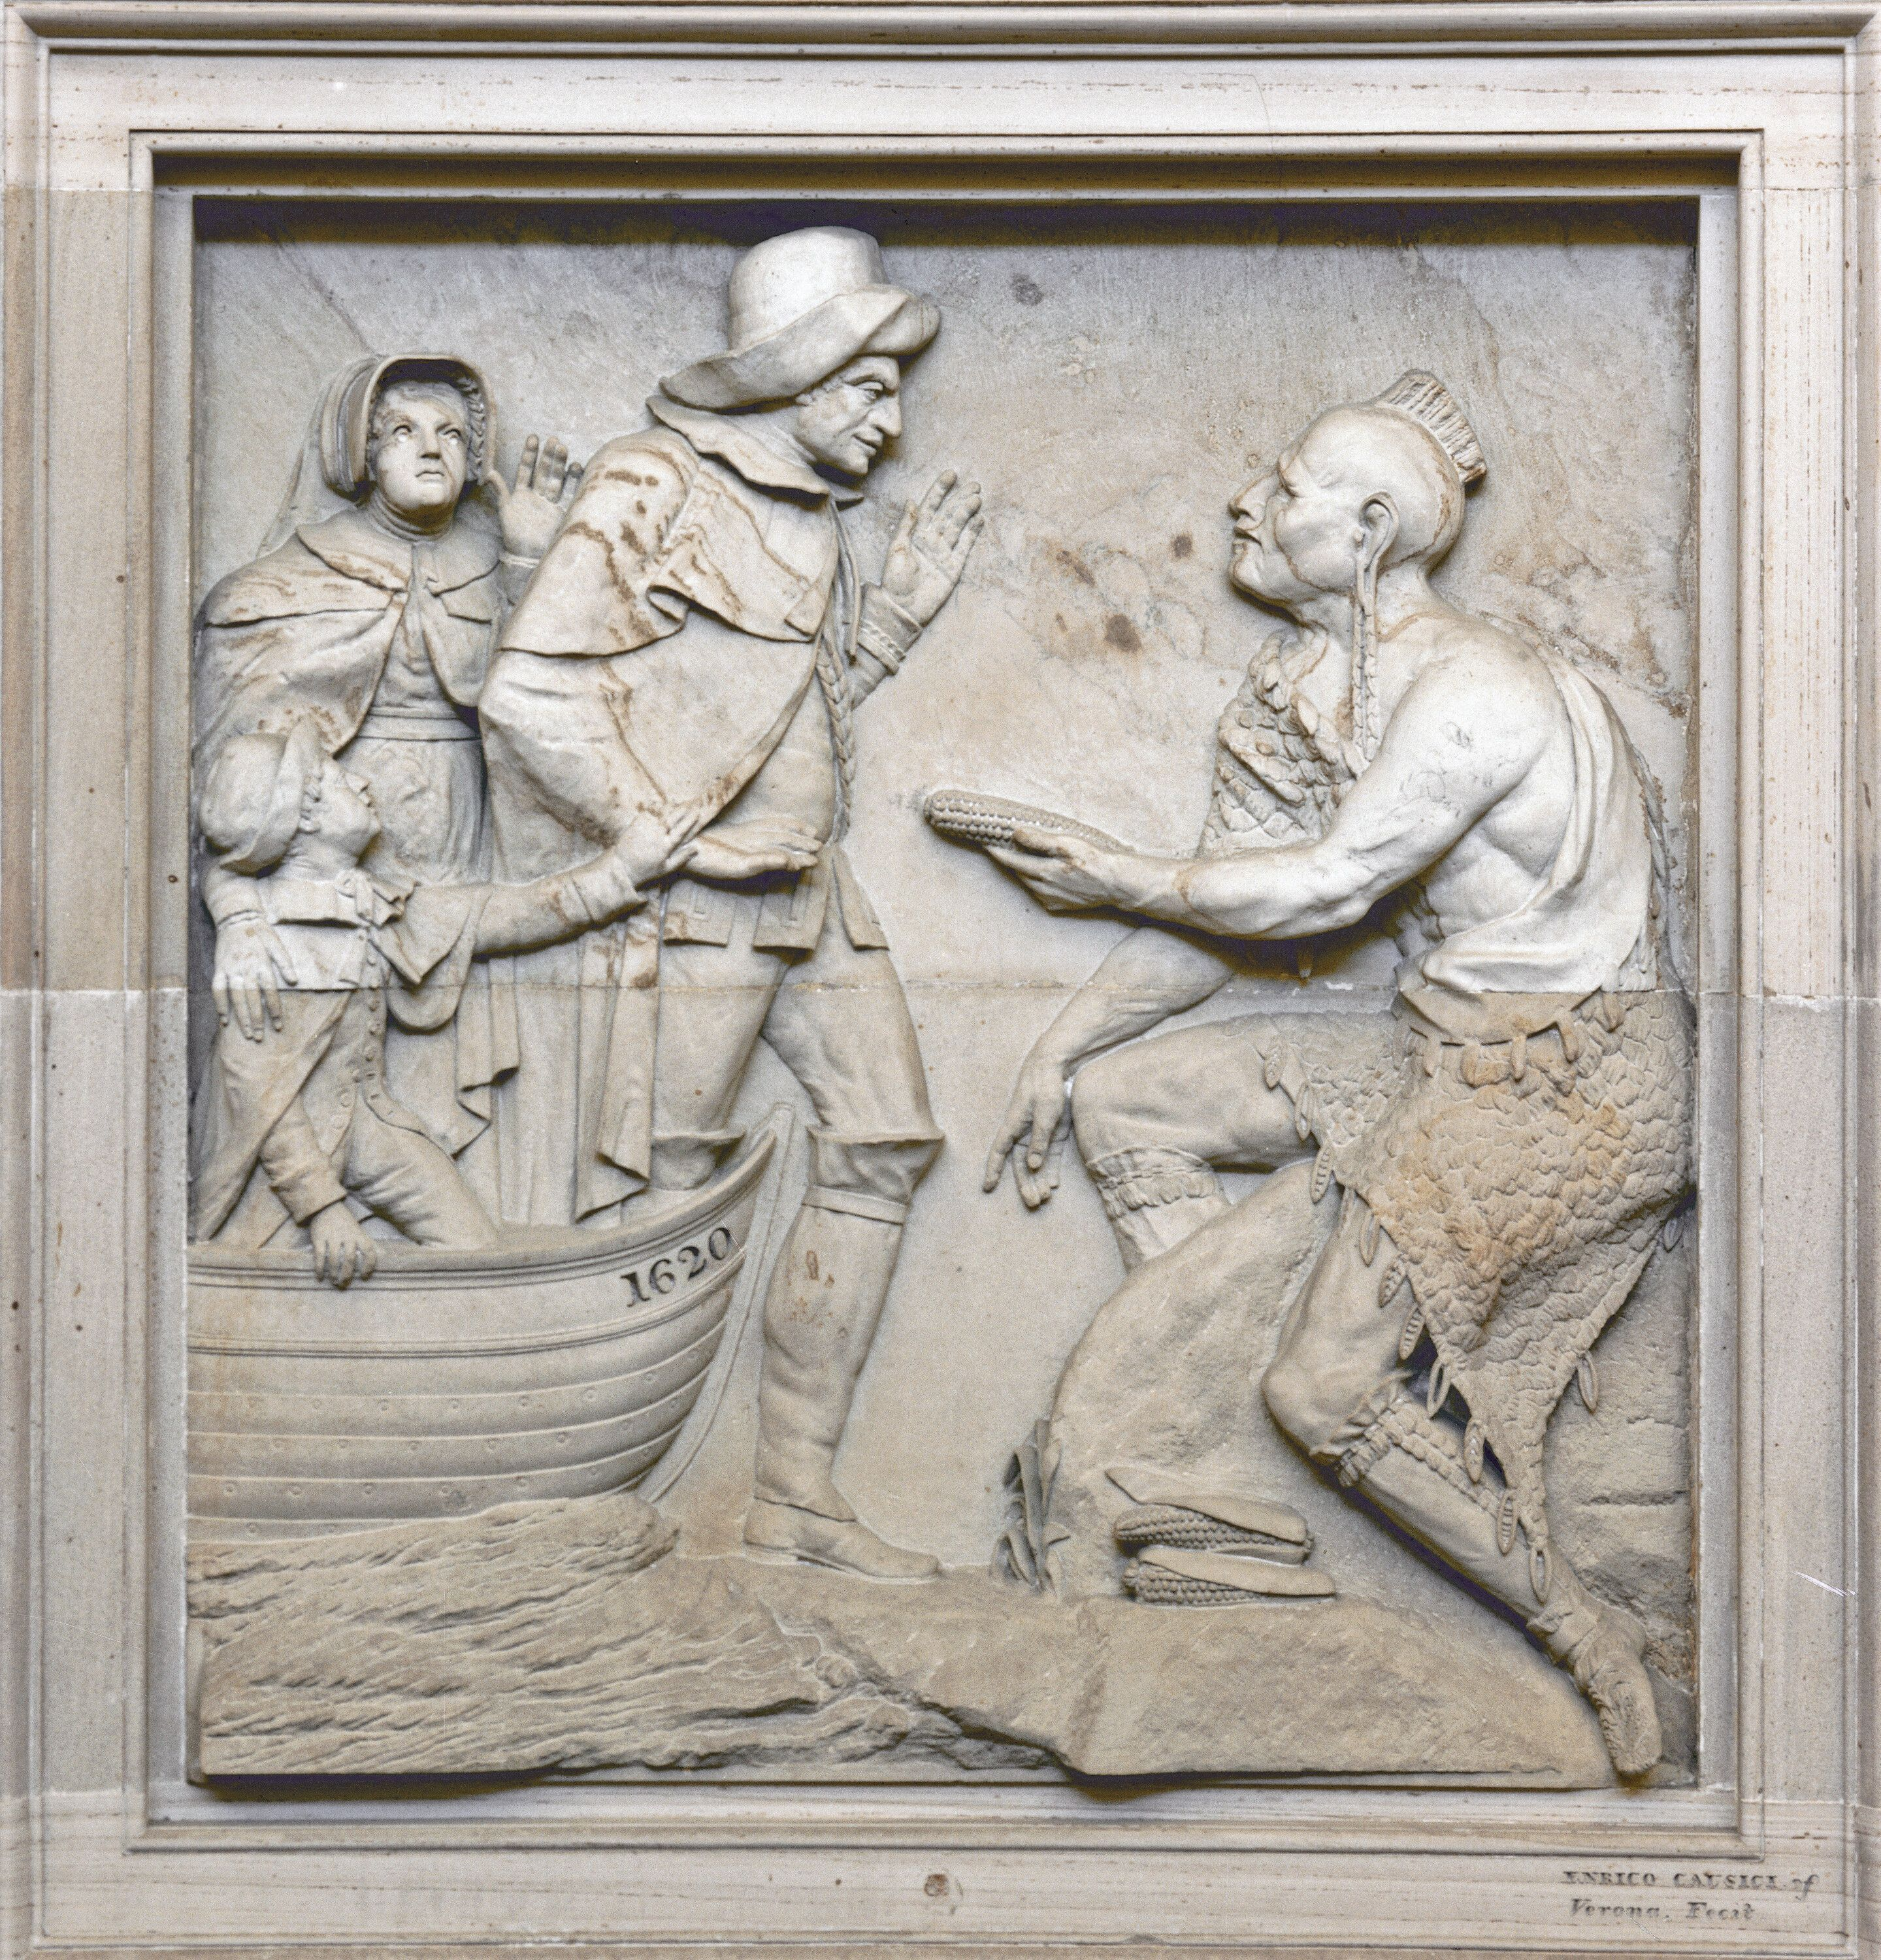 A hunched Indian offers corn to a settler stepping out of a boat labeled 1620. Sandstone carving by Enrico Causici, 1825.